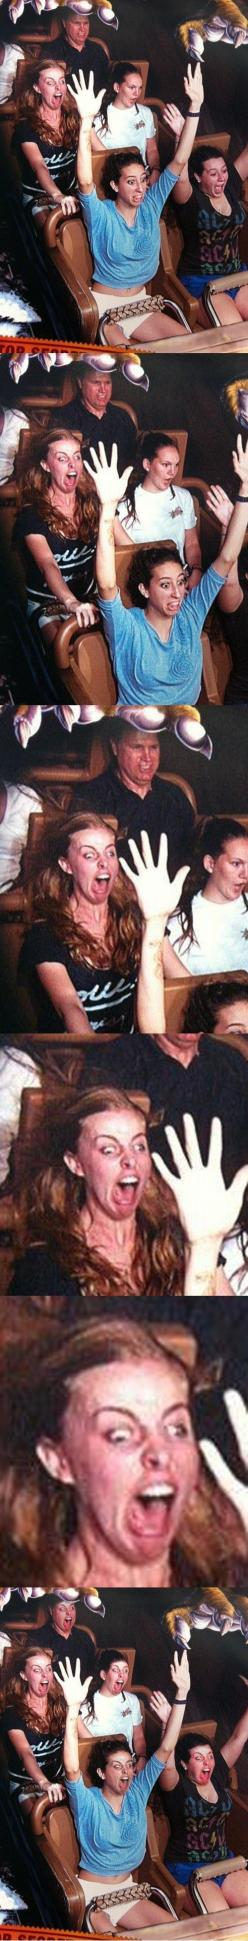 The longer you look....I'm dying.: Laughing So Hard, Giggle, Rollercoaster, Cant, Face Swaps, Funny Stuff, Roller Coasters, Faceswap, So Funny